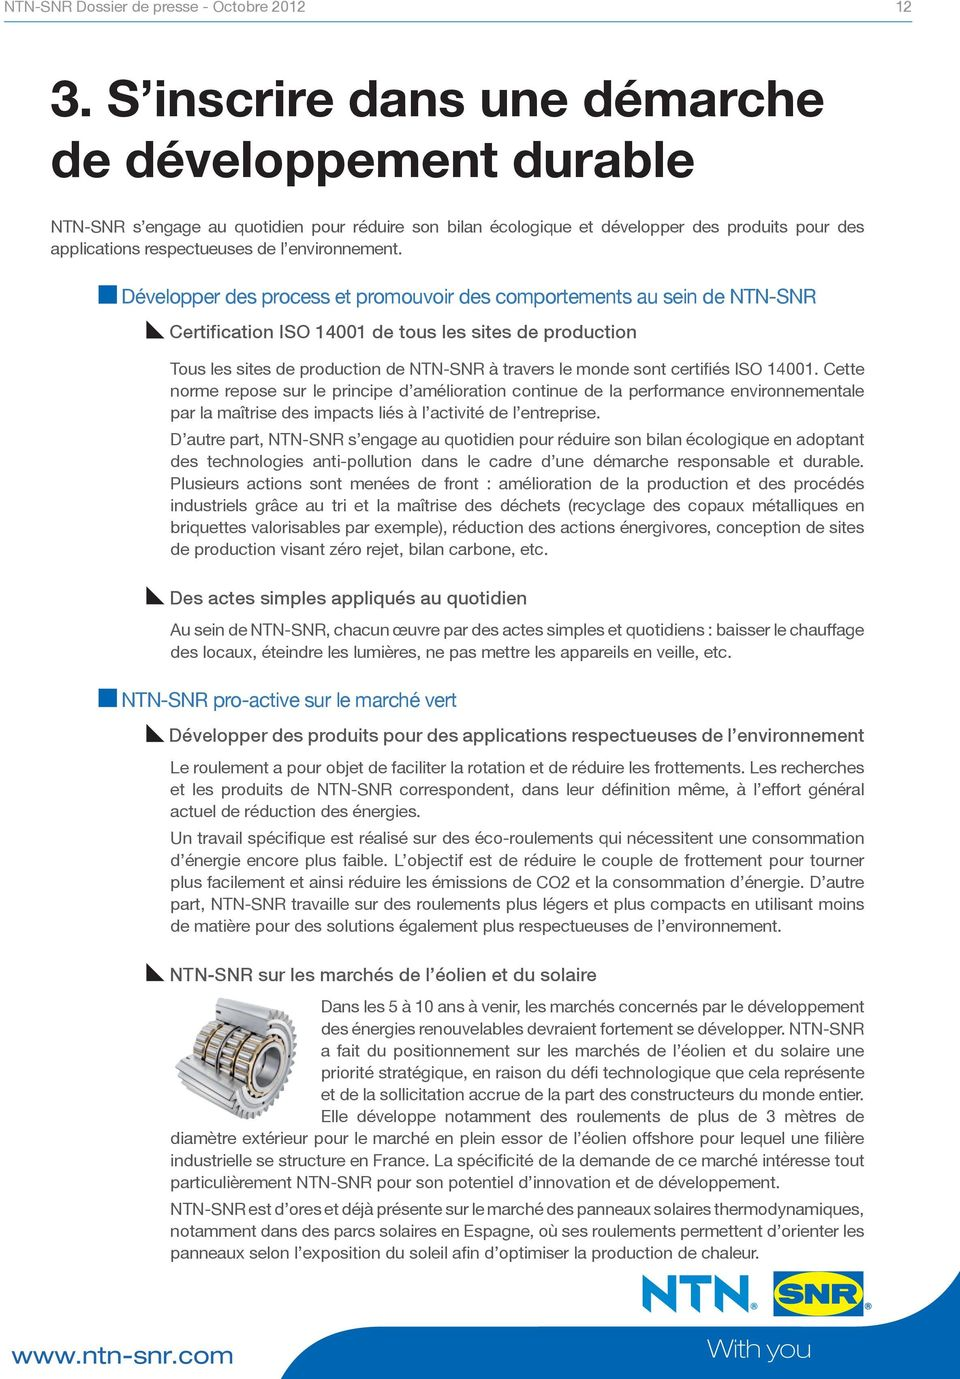 Développer des process et promouvoir des comportements au sein de NTN-SNR Certification ISO 14001 de tous les sites de production Tous les sites de production de NTN-SNR à travers le monde sont